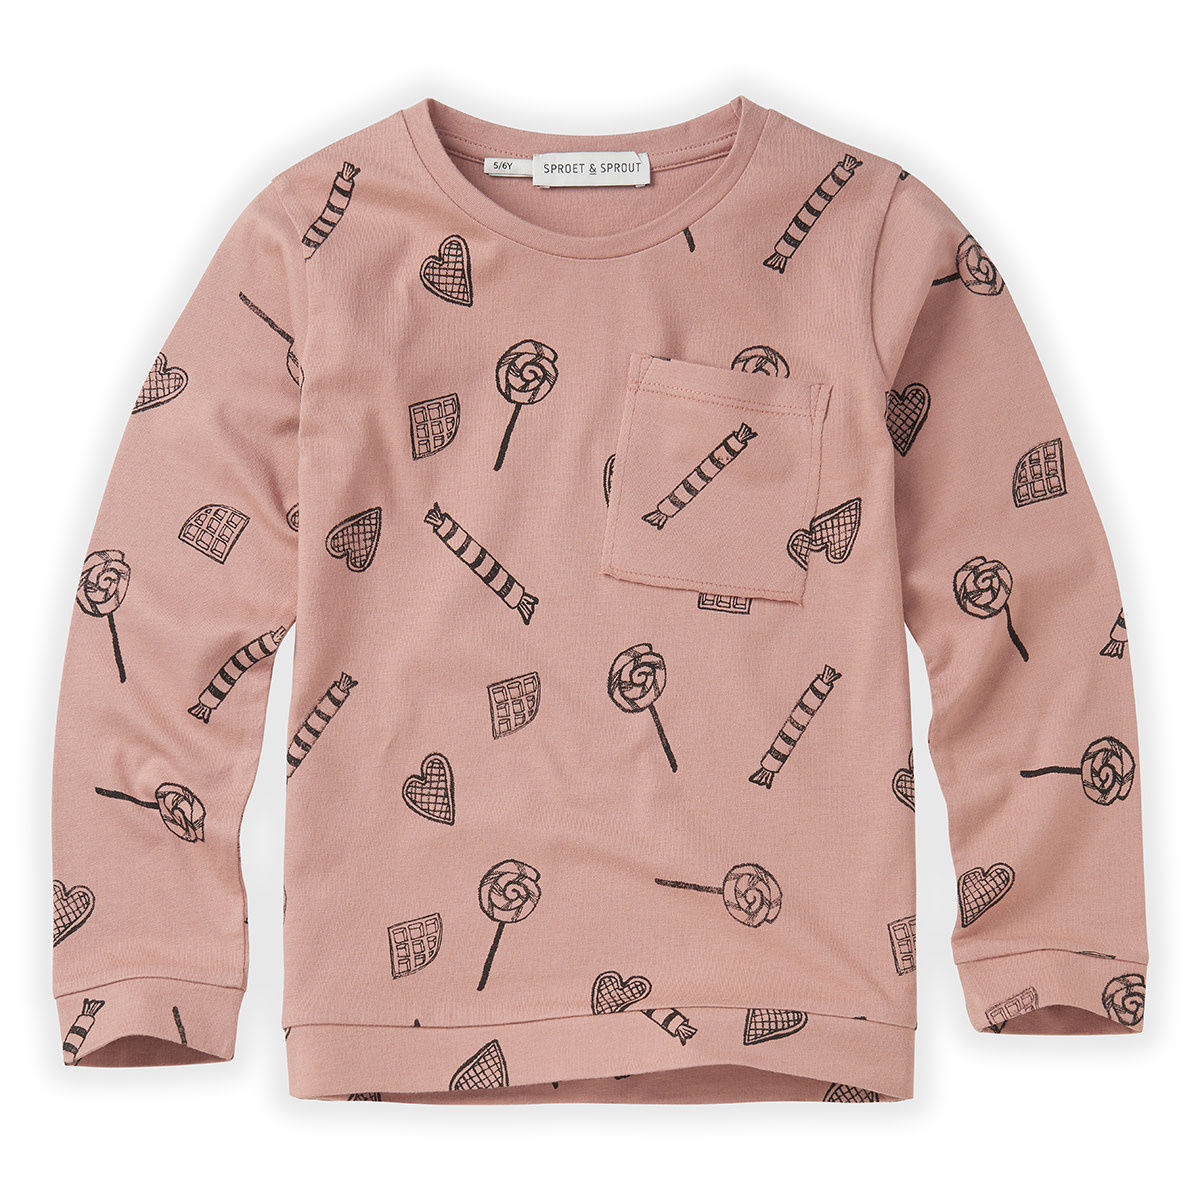 Sproet & Sprout T-shirt | Candy AOP